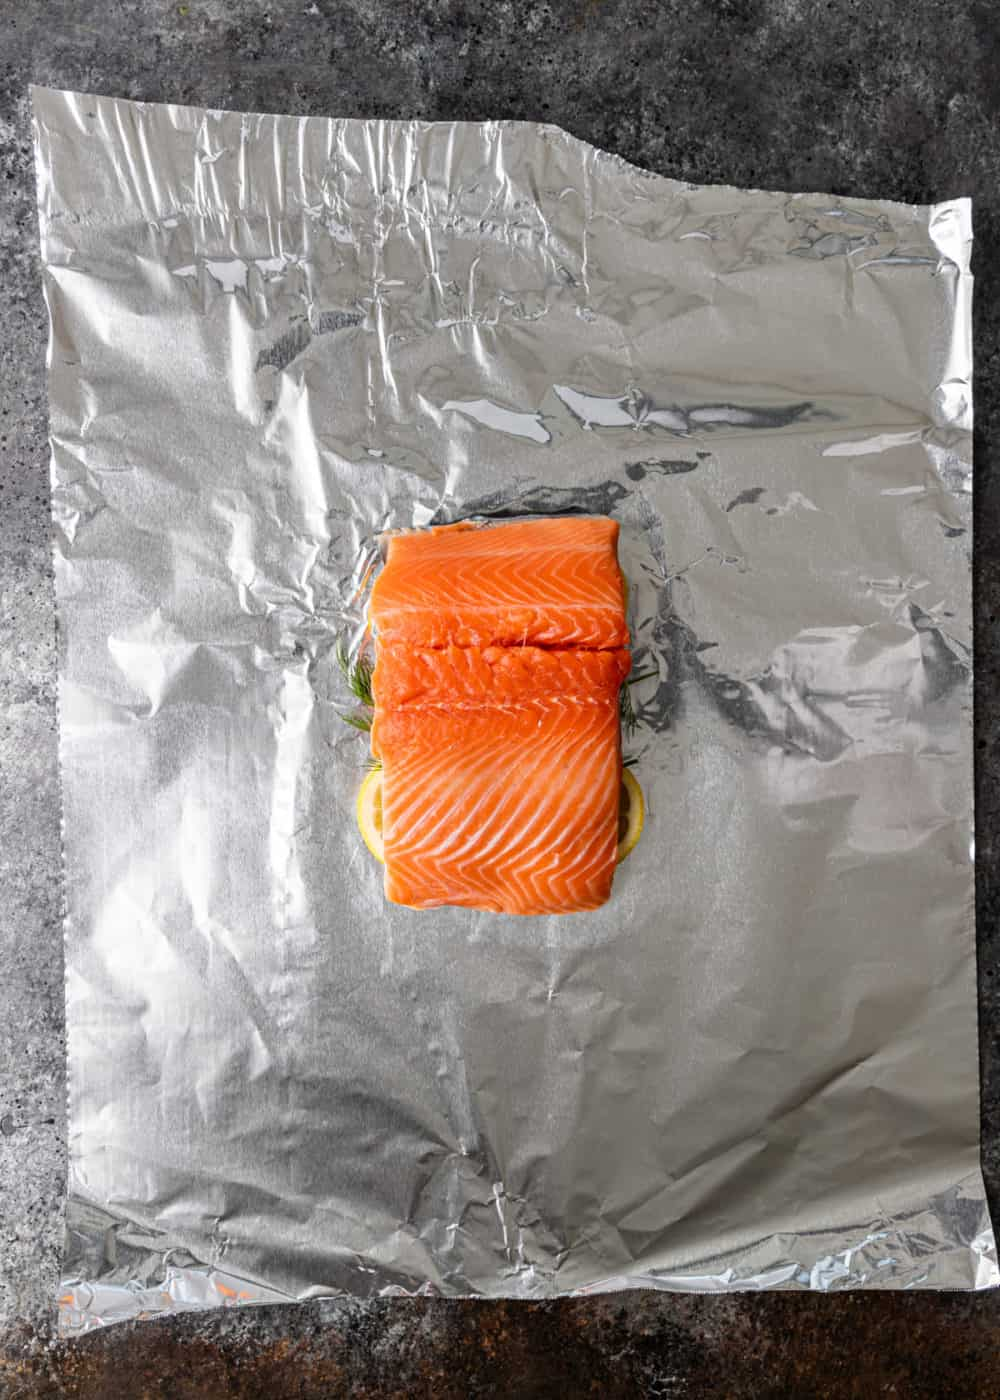 getting fish filet ready for grilling